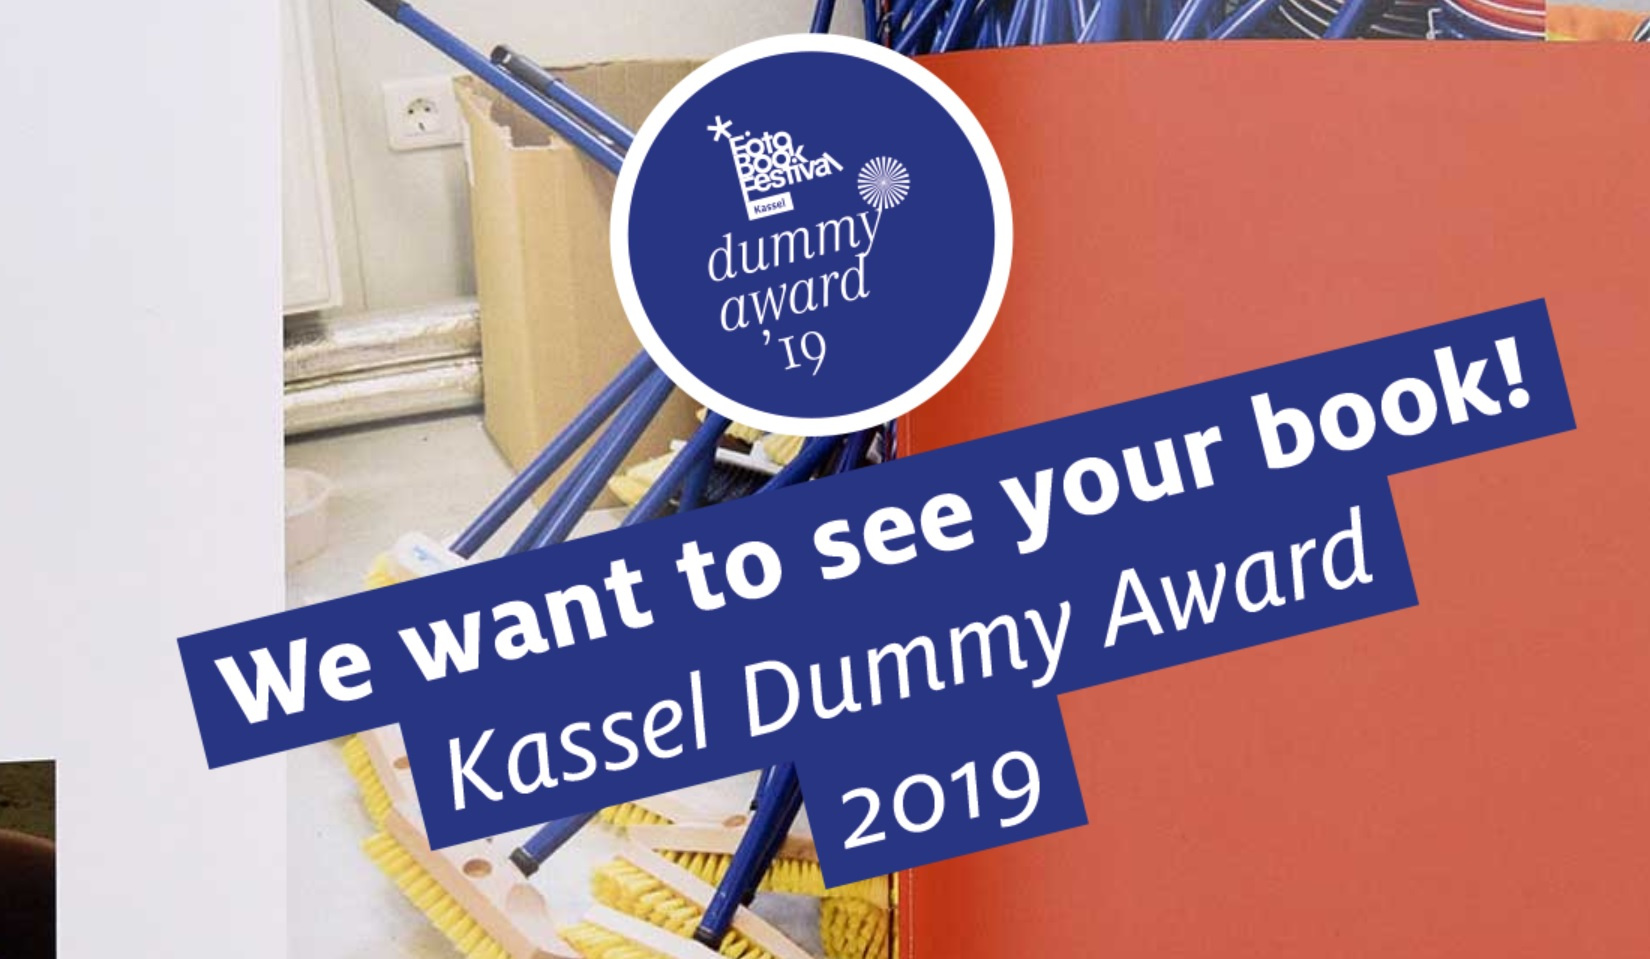 10th Kassel Dummy Award 2019 - logo